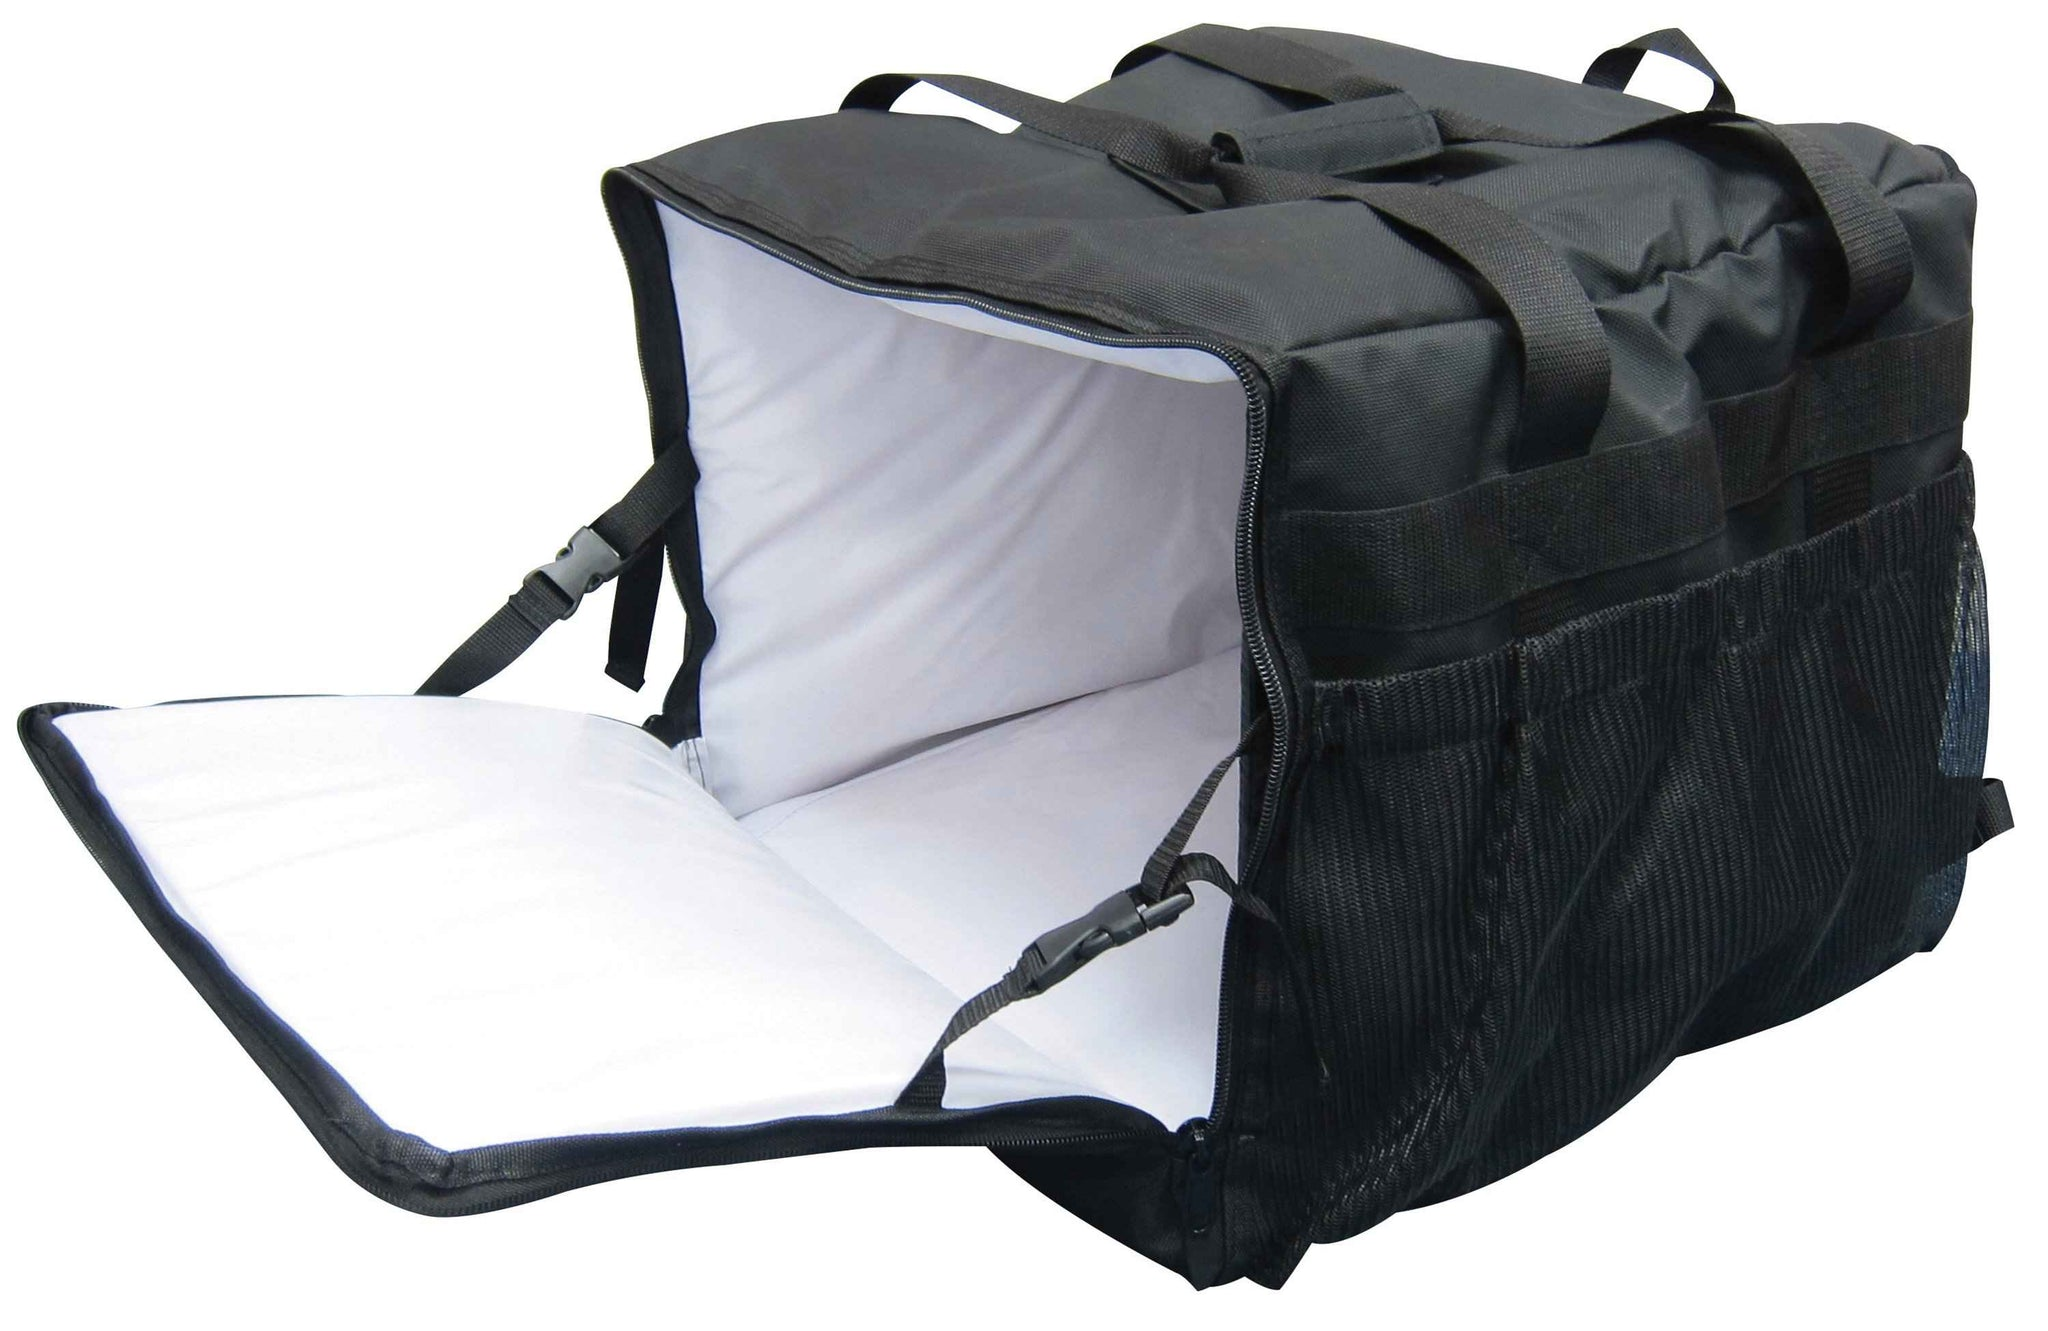 "Side Loading Backpack Delivery Bag - 18""x18""x15"""